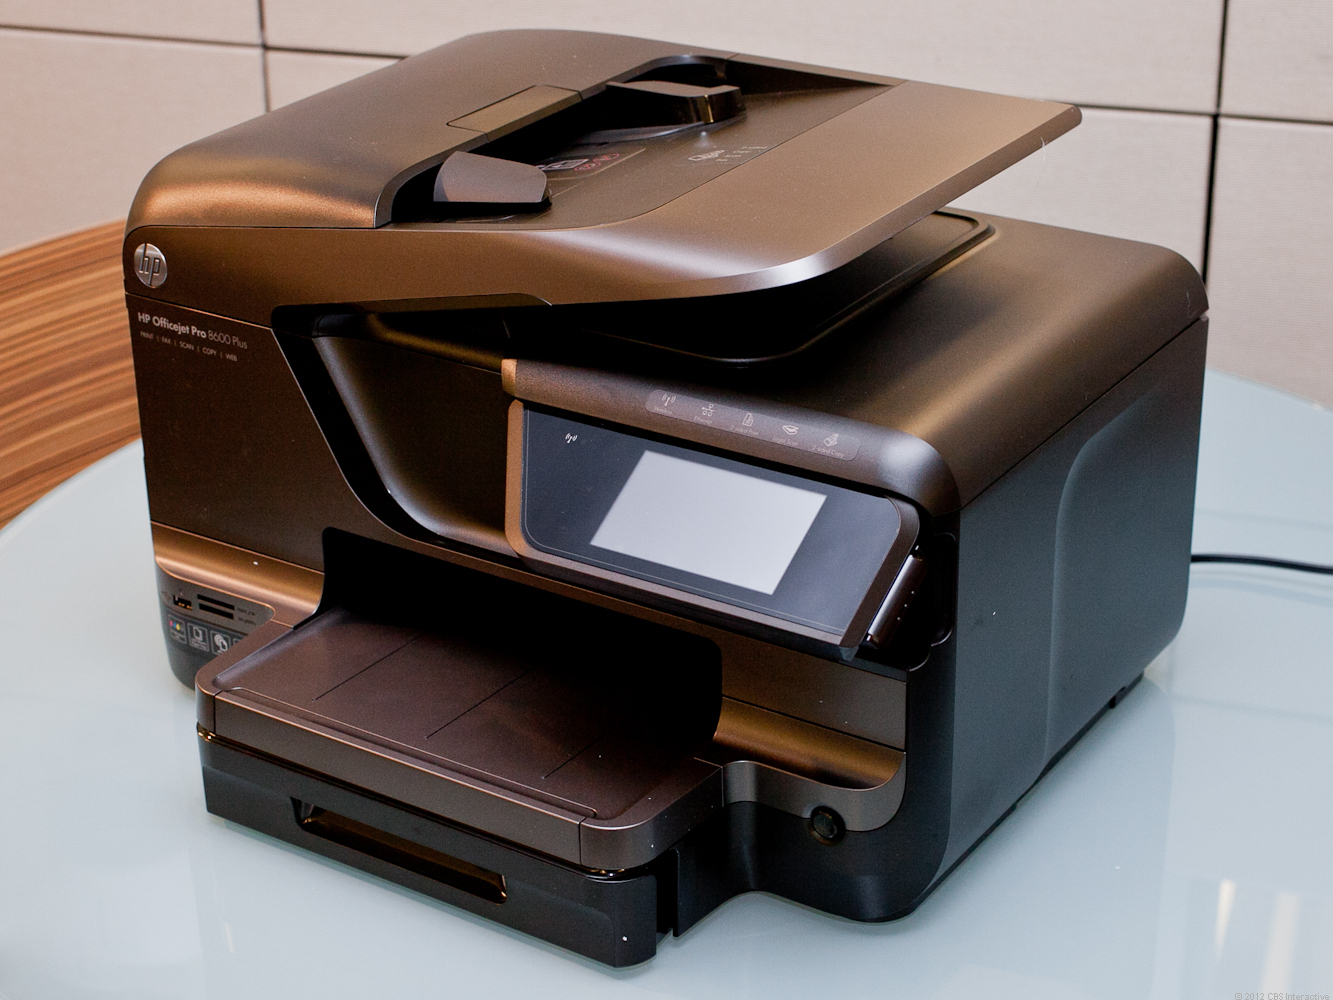 HP Officejet Pro 8600 Plus e-All-in-One Printer